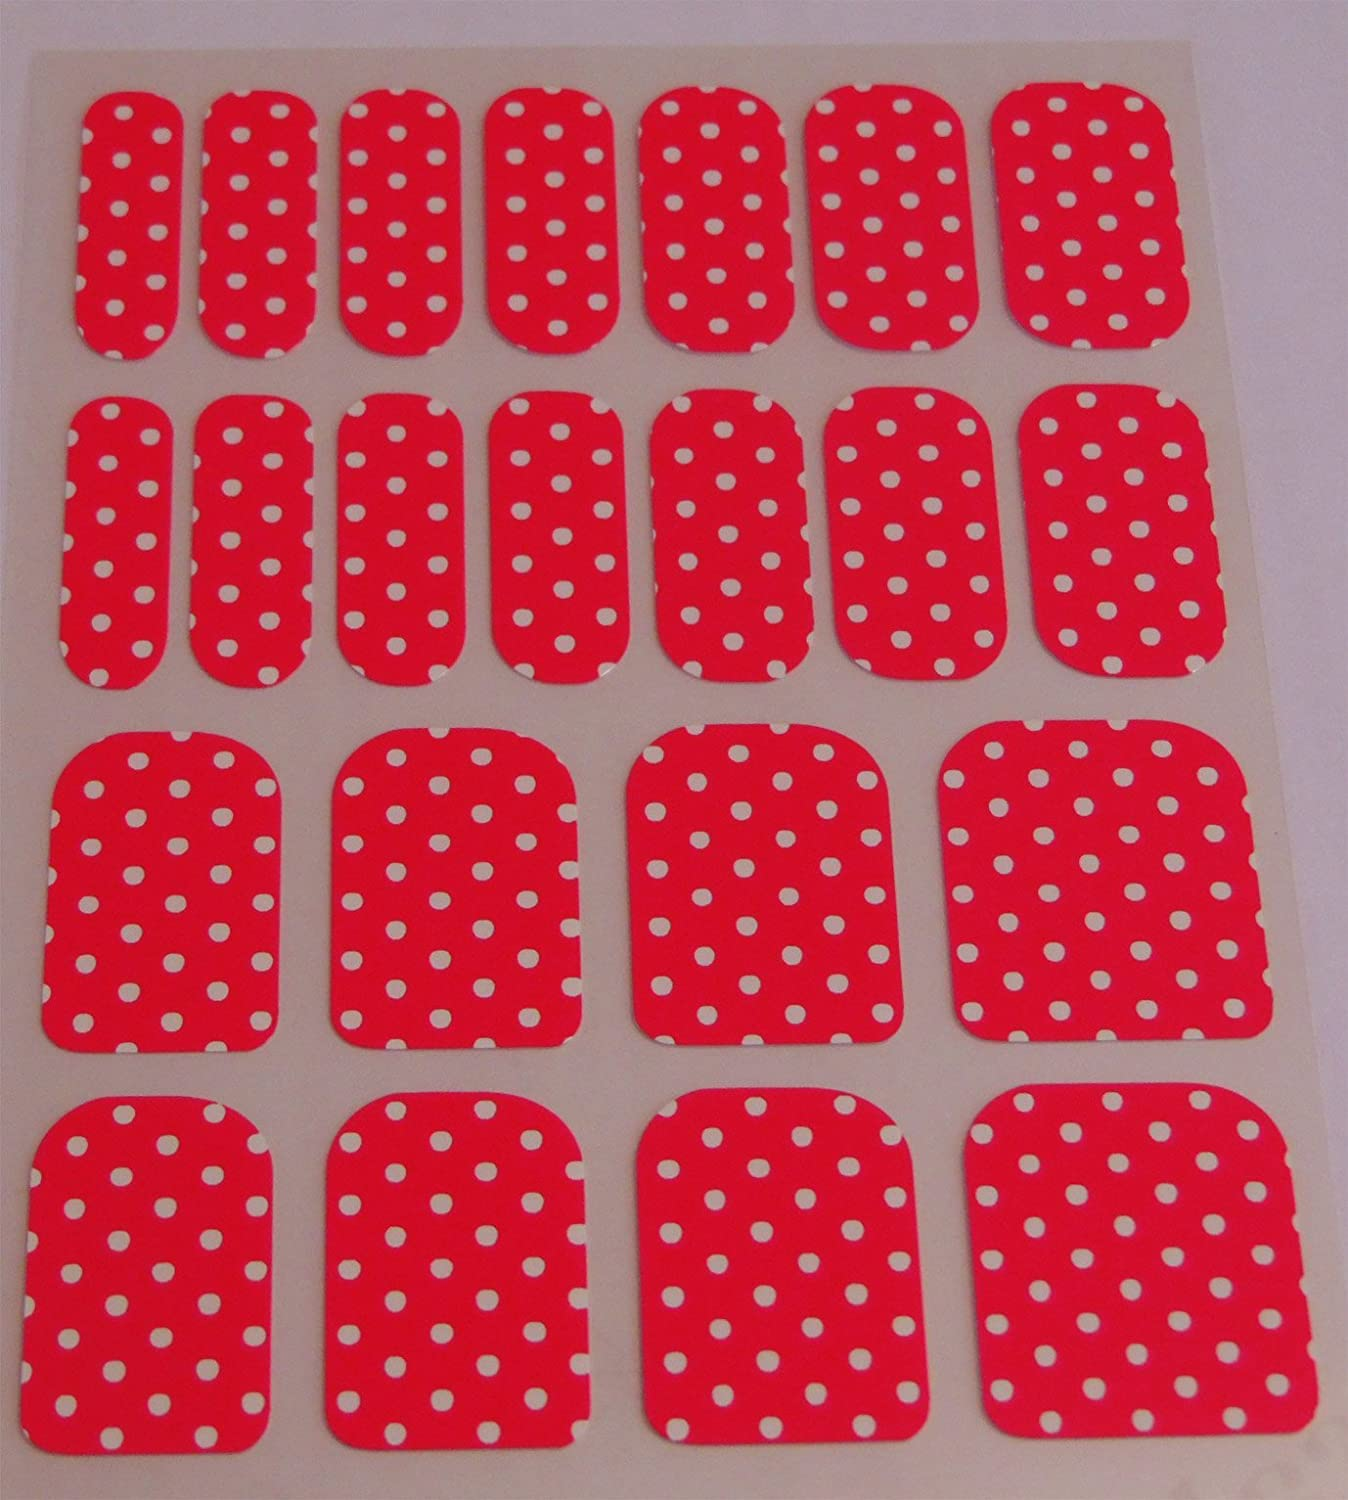 Chix Nails Polka Dot Minx Trendy Style Fingers Toes Vinyl Foils Nail Wraps, Silver on Blue Pd8